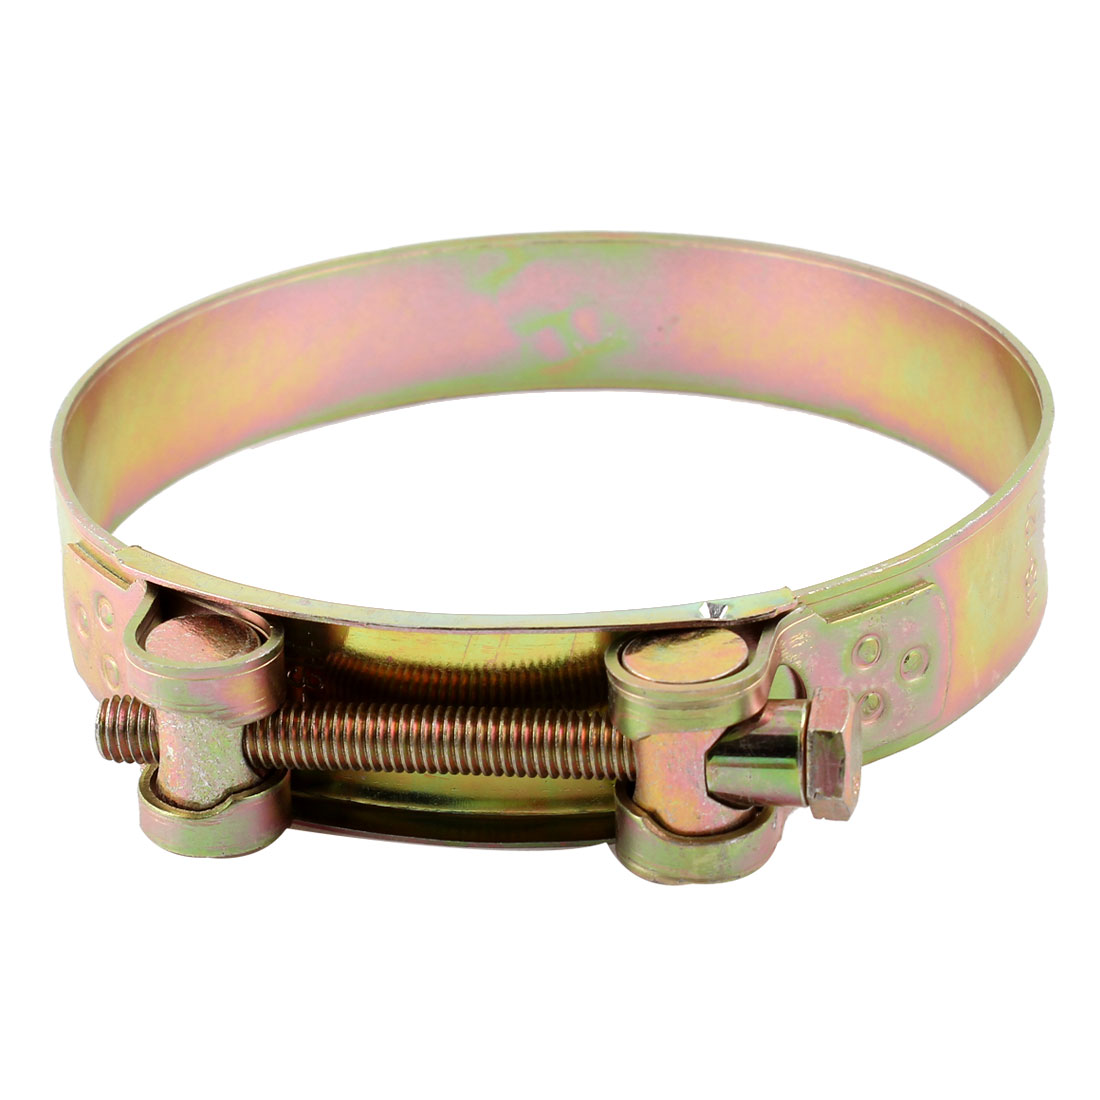 113-121mm Range Adjustable Liquid Hose Pipe Clamp Hoop Bronze Tone